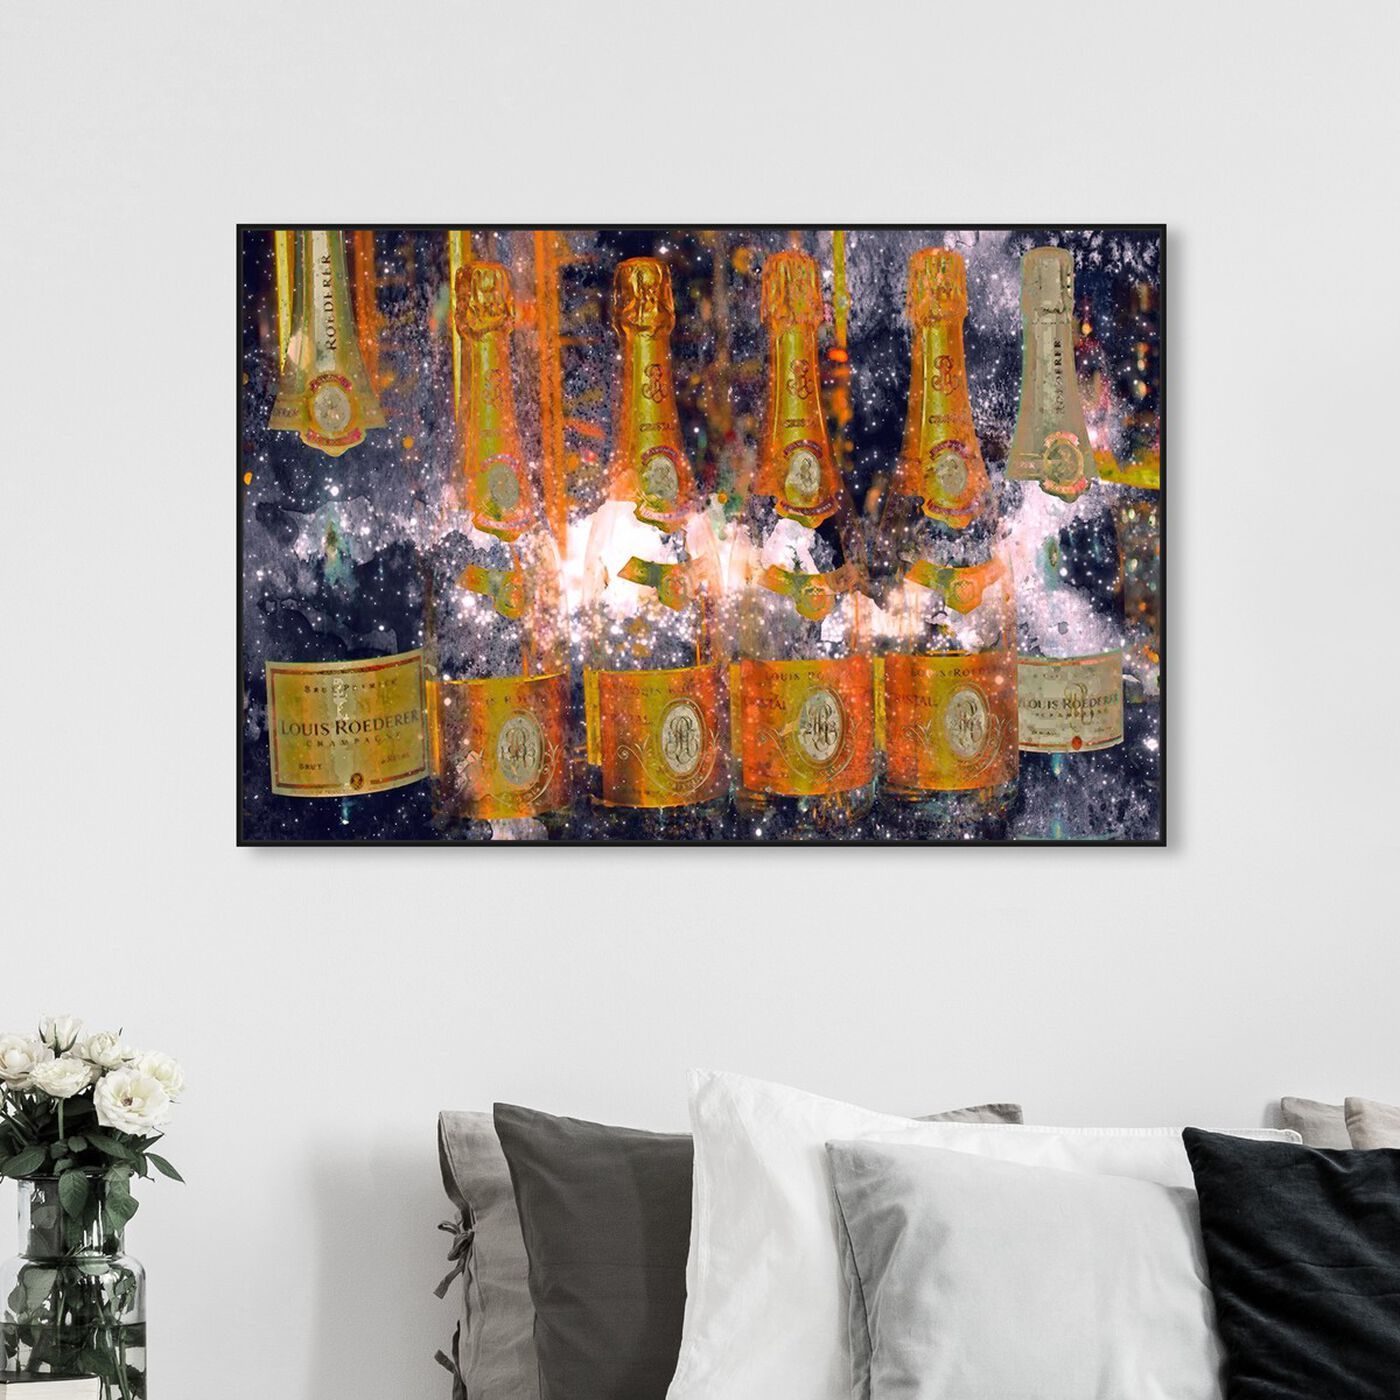 Hanging view of Galactic Cristal featuring drinks and spirits and champagne art.